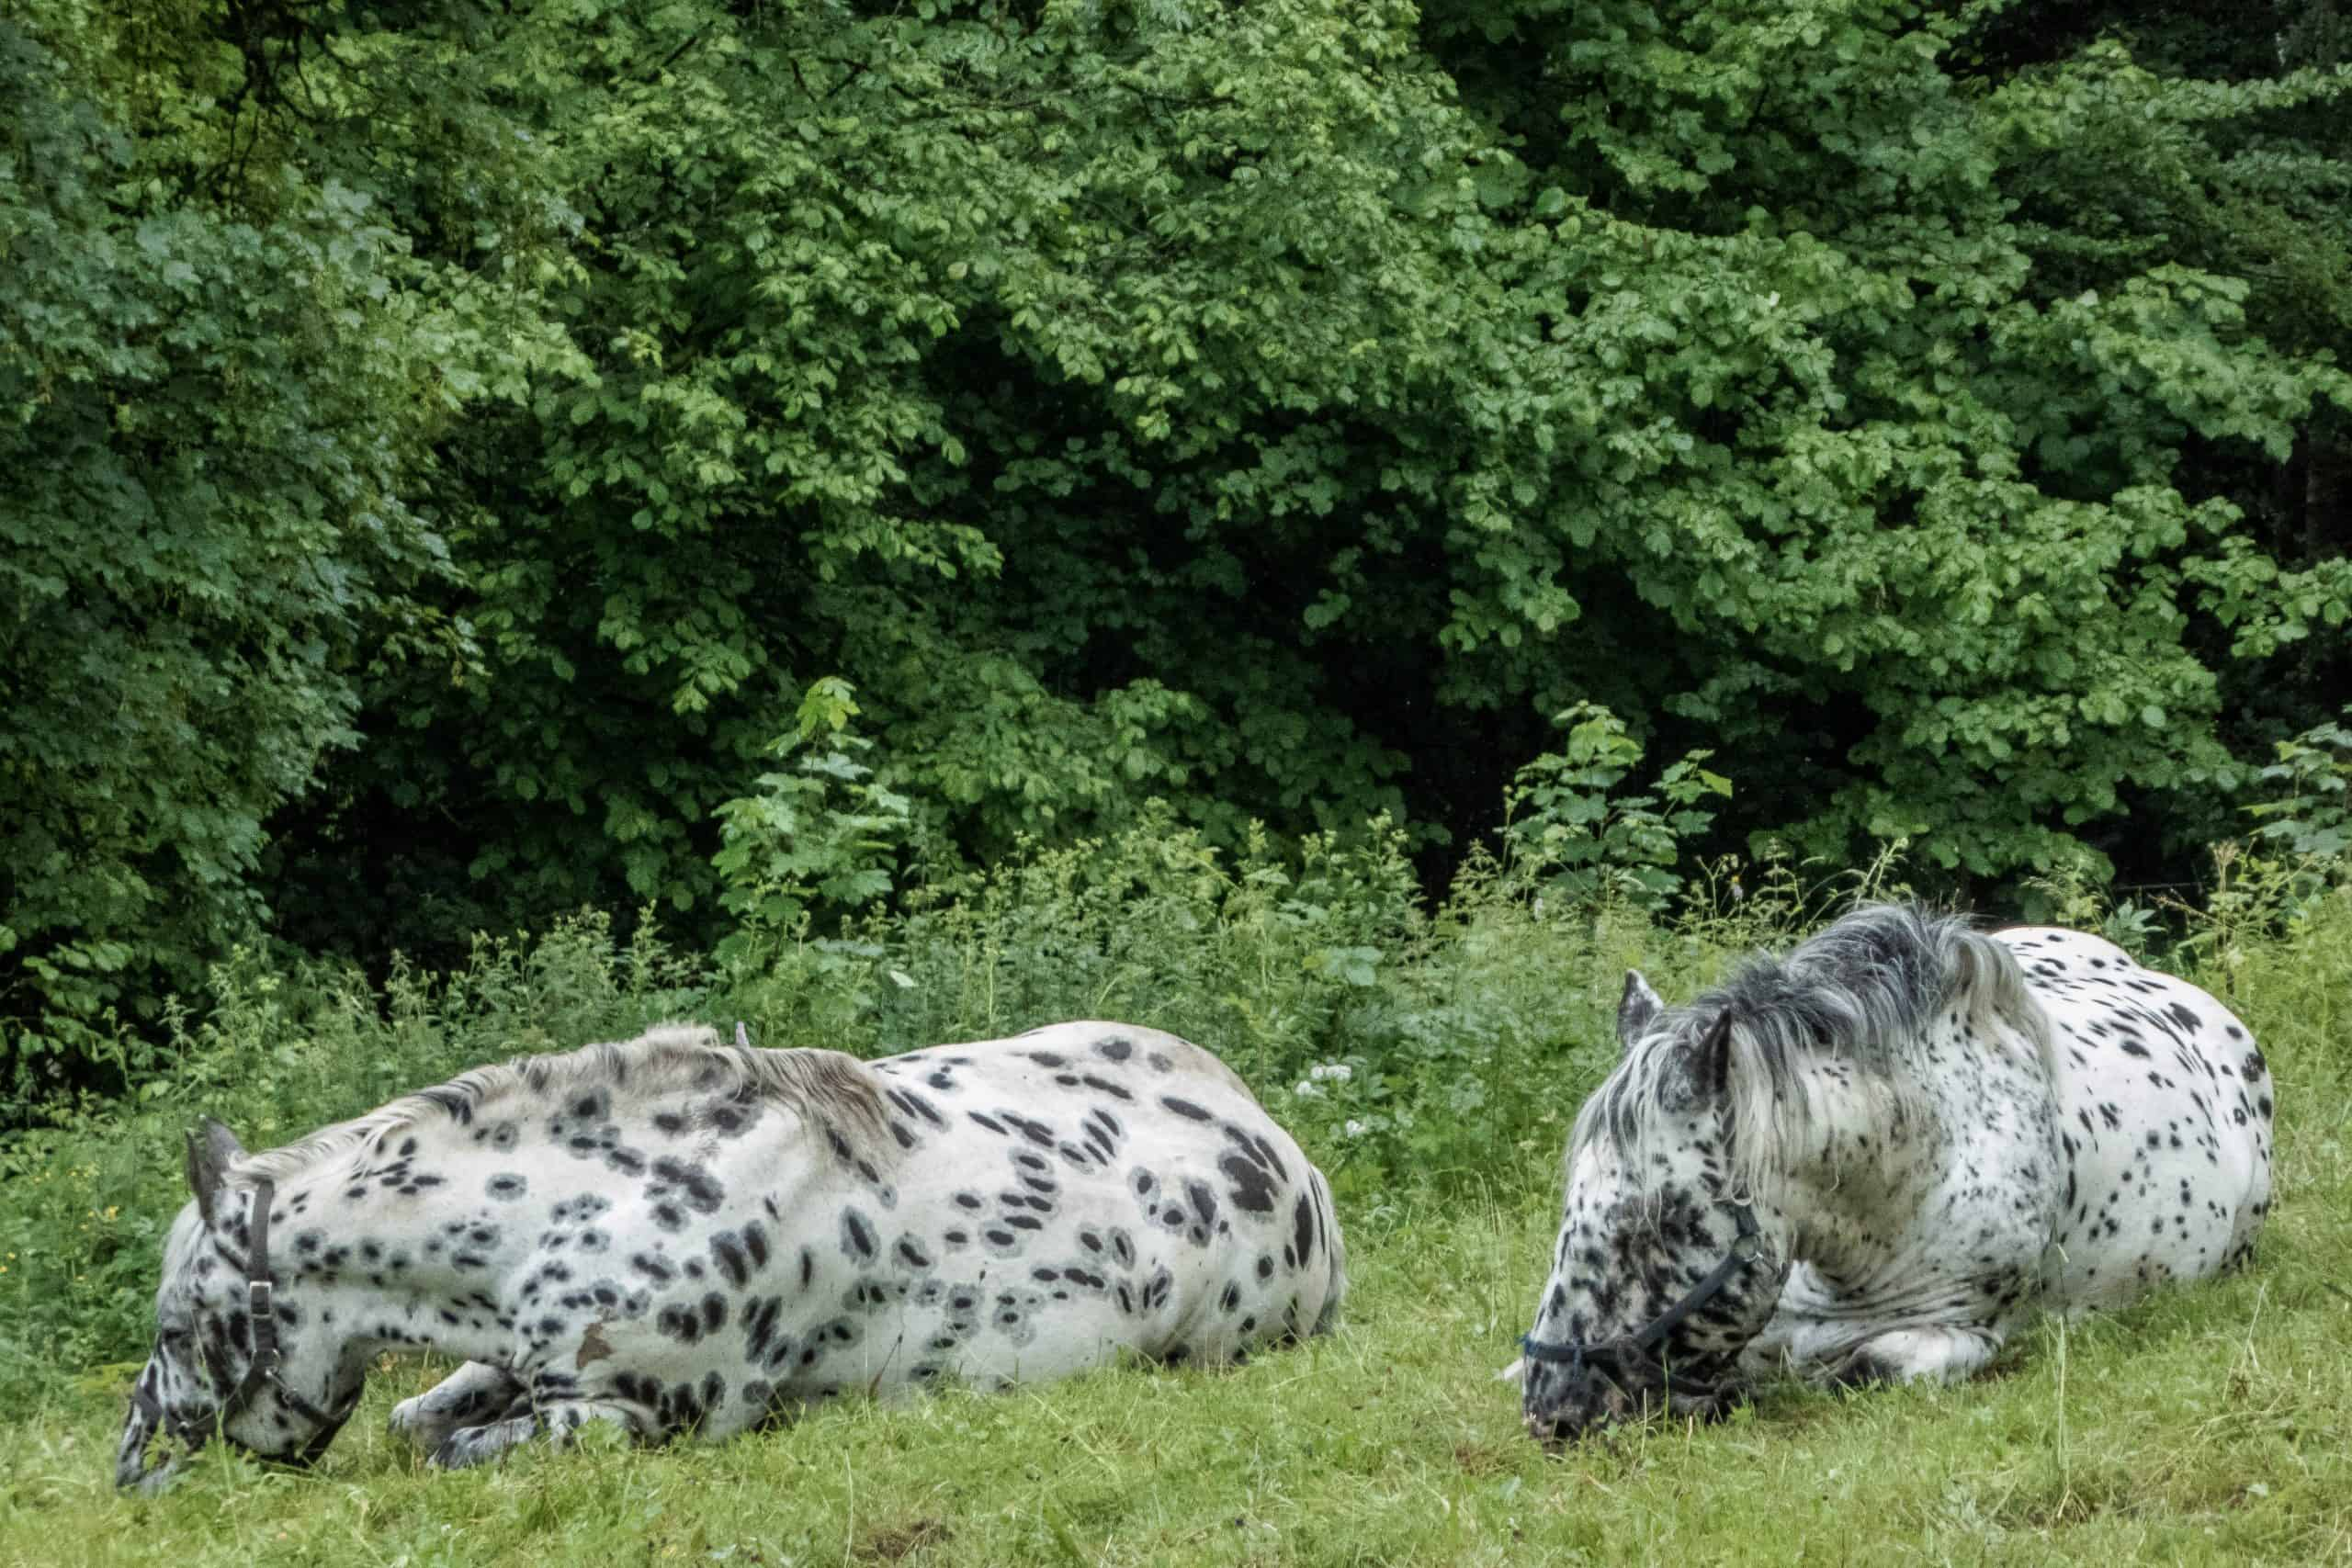 Knabstrupper is a danish horse breed, with an unusual coat pattern from solid white to full leopard spotted. Photograph taken near Kreuth, Bavaria, Germany.